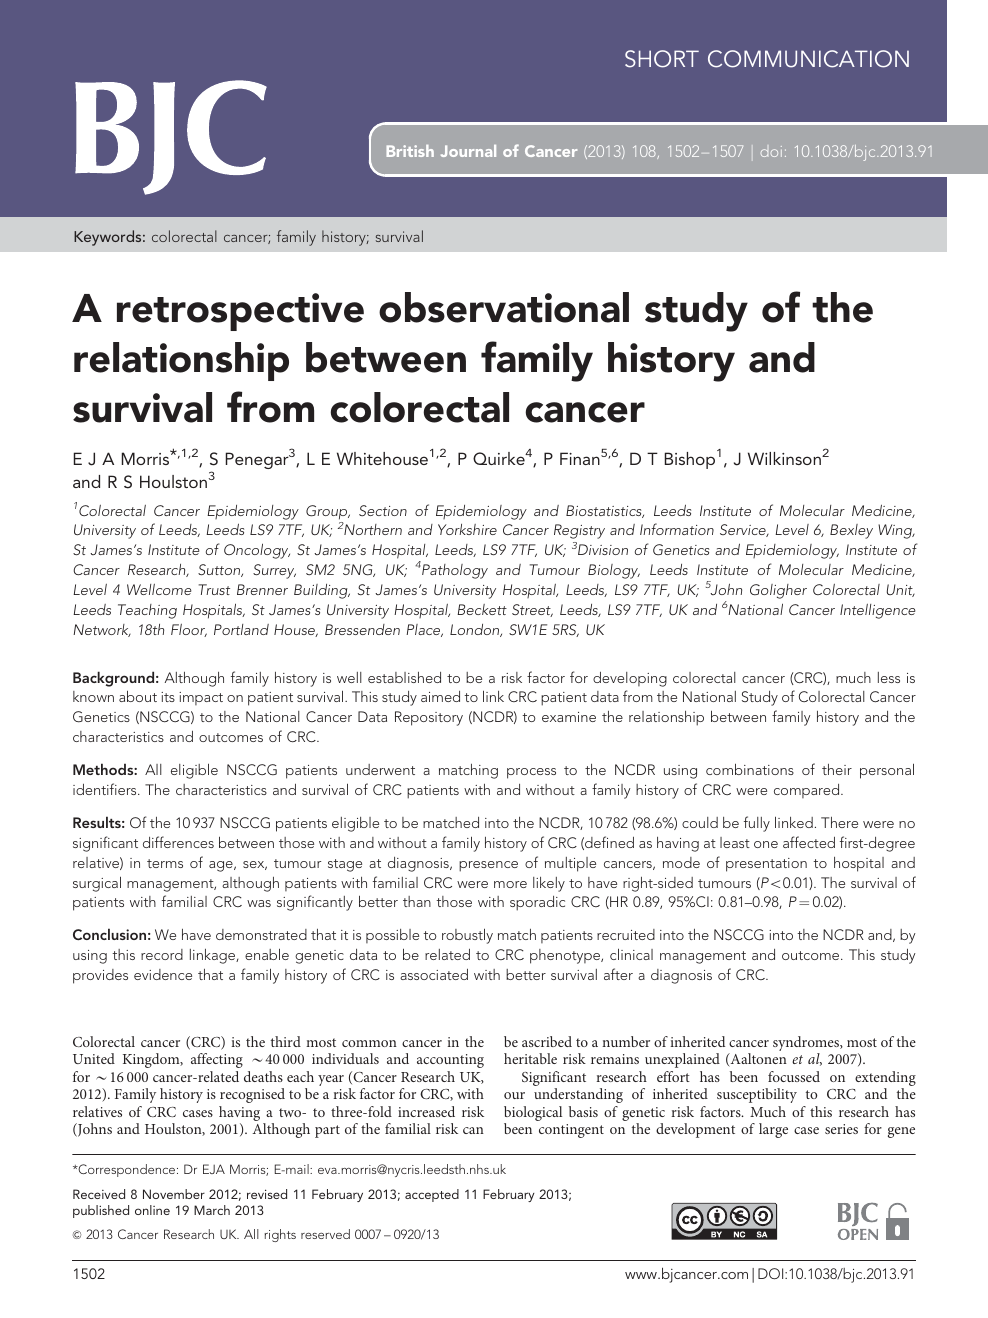 A Retrospective Observational Study Of The Relationship Between Family History And Survival From Colorectal Cancer Topic Of Research Paper In Health Sciences Download Scholarly Article Pdf And Read For Free On